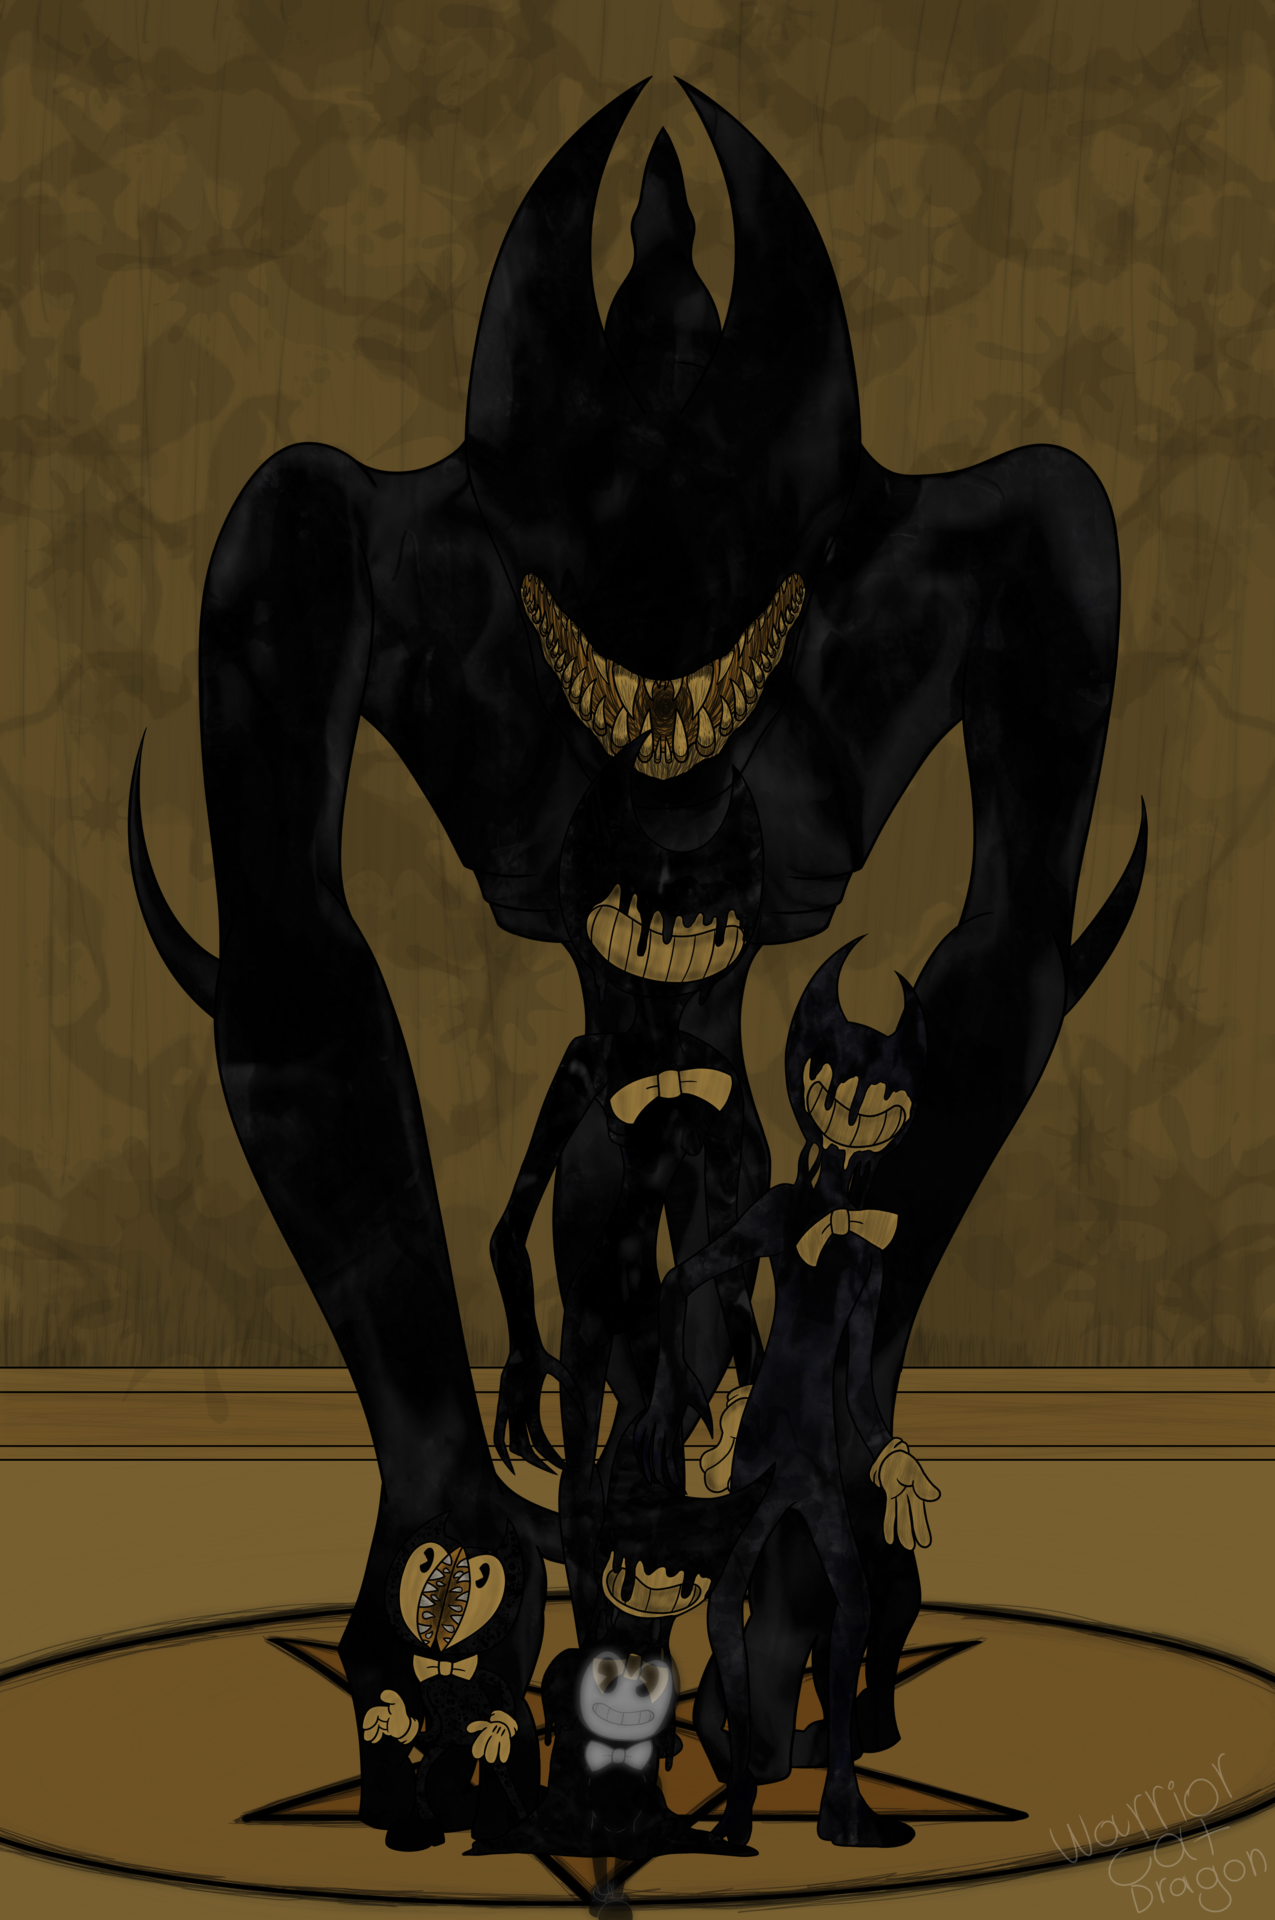 Ink Beast Bendy Tumblr Bendy And The Ink Machine Ink Beast